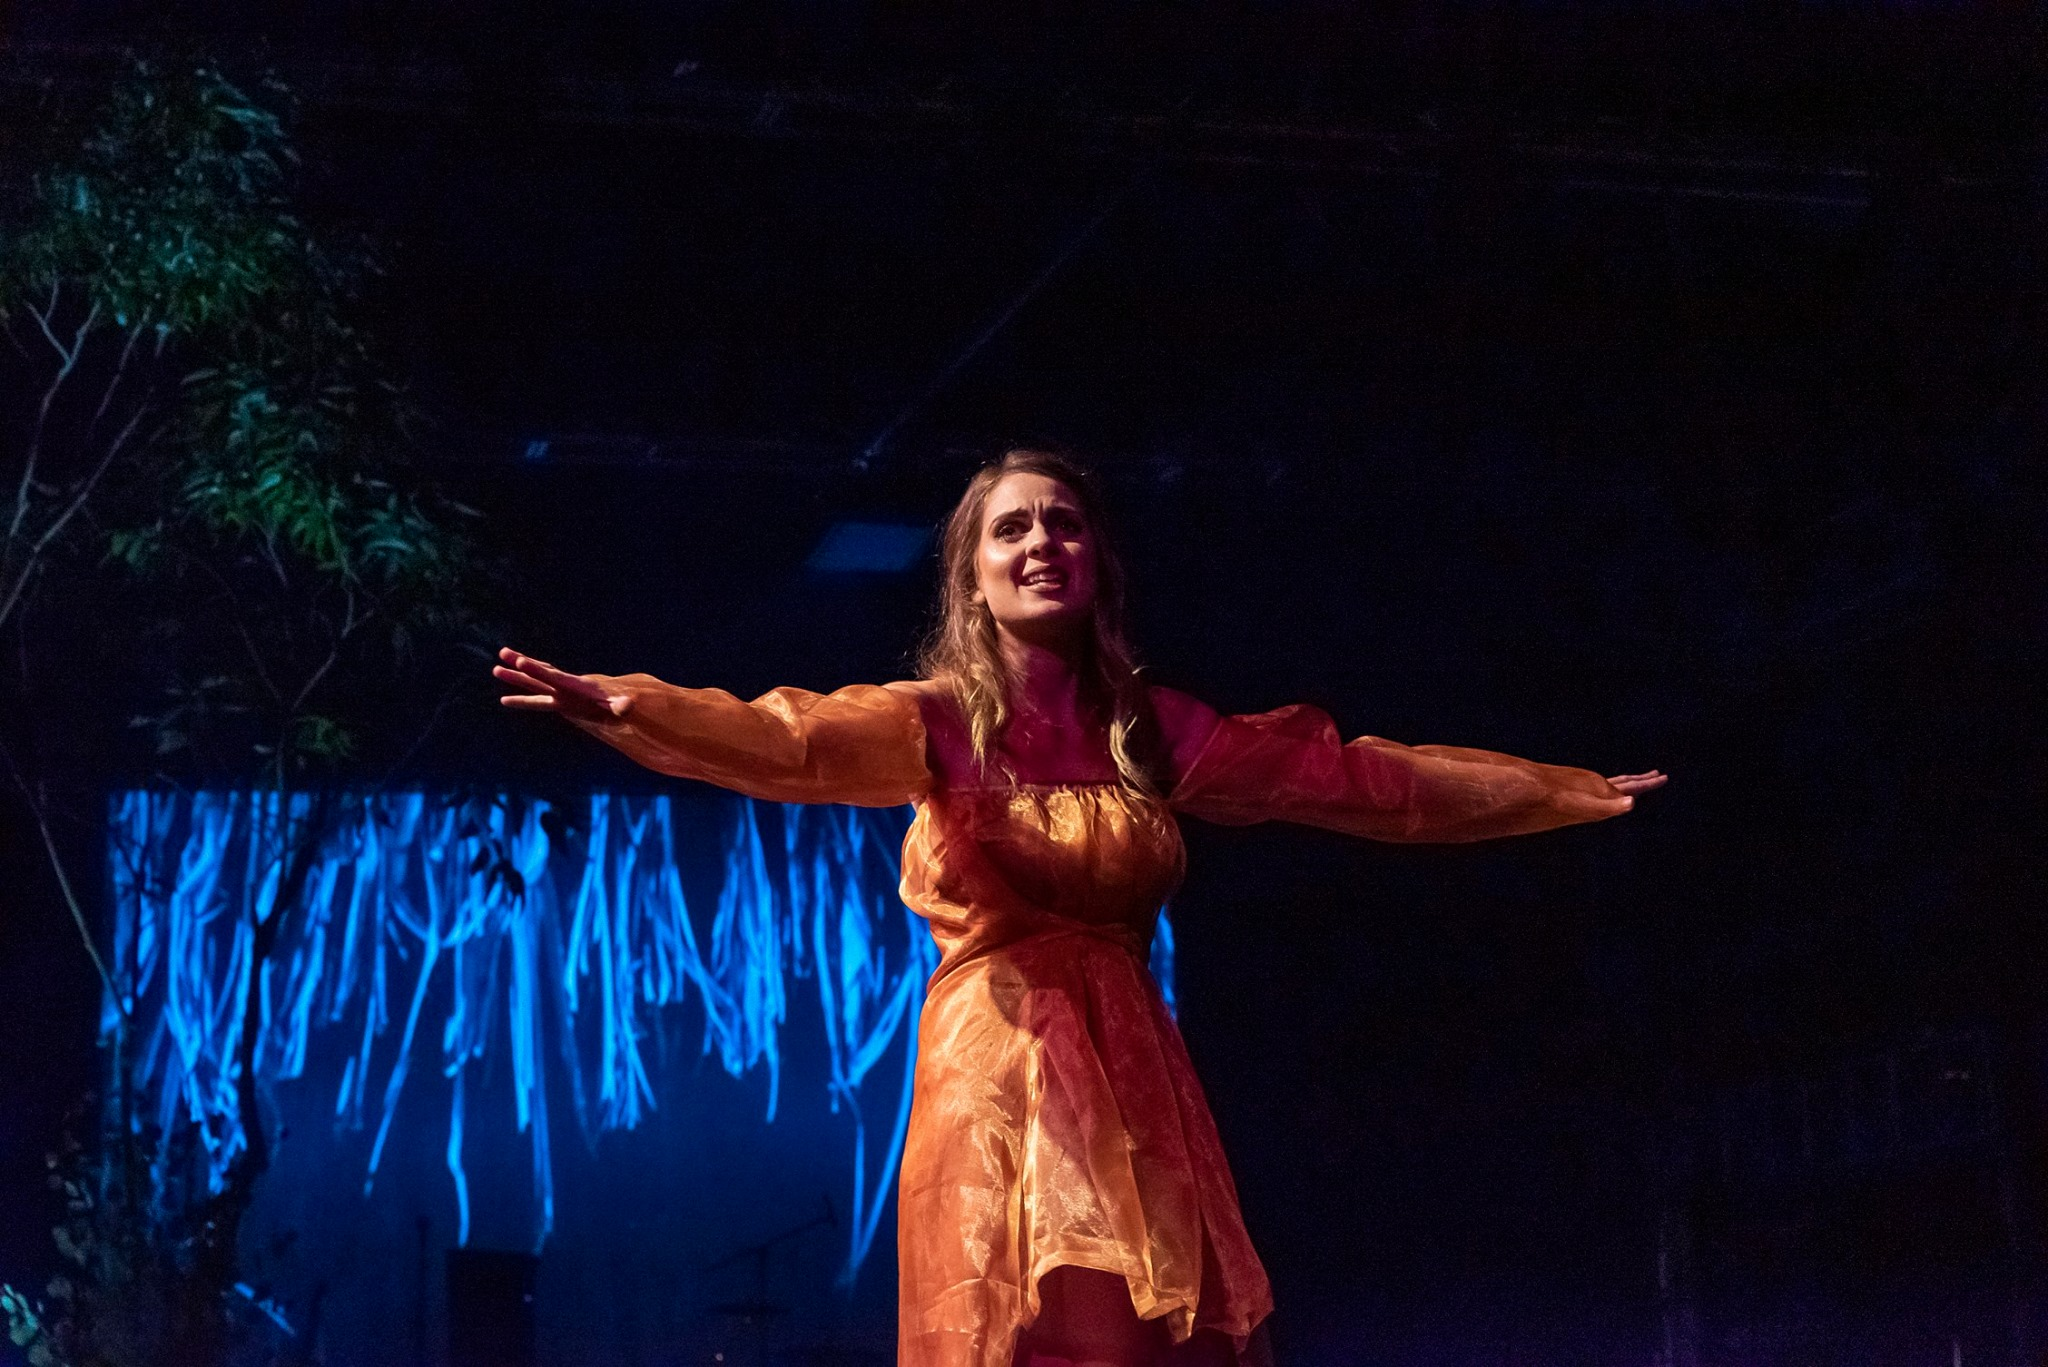 A performer wearing orange long sleeve dress standing with arms extended out straight like a bird. Dark background with a tree to the left and blue lighting.